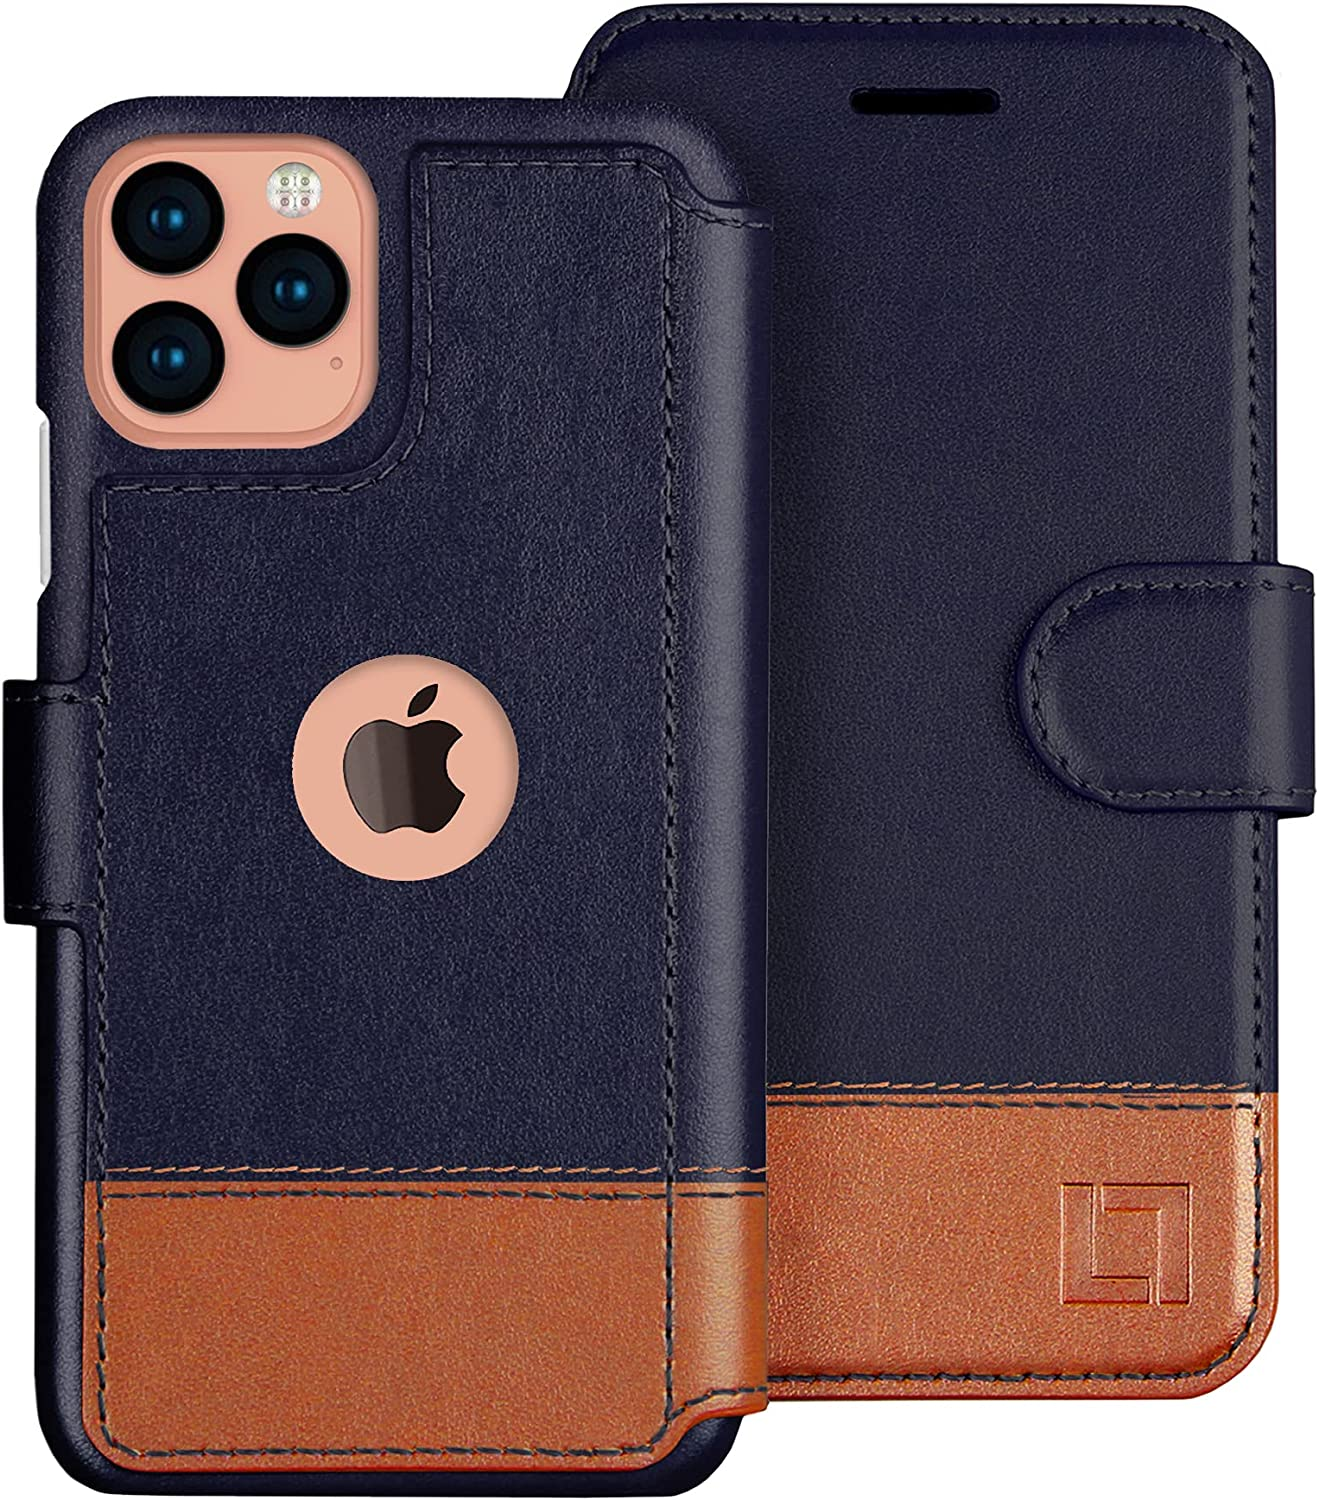 LUPA iPhone 12 Pro Max Wallet Case -Slim iPhone 12 Pro Max Flip Case with Credit Card Holder, for Women & Men, Faux Leather iPhone 12 Pro Max Purse Cases with Magnetic Closure, Desert Sky